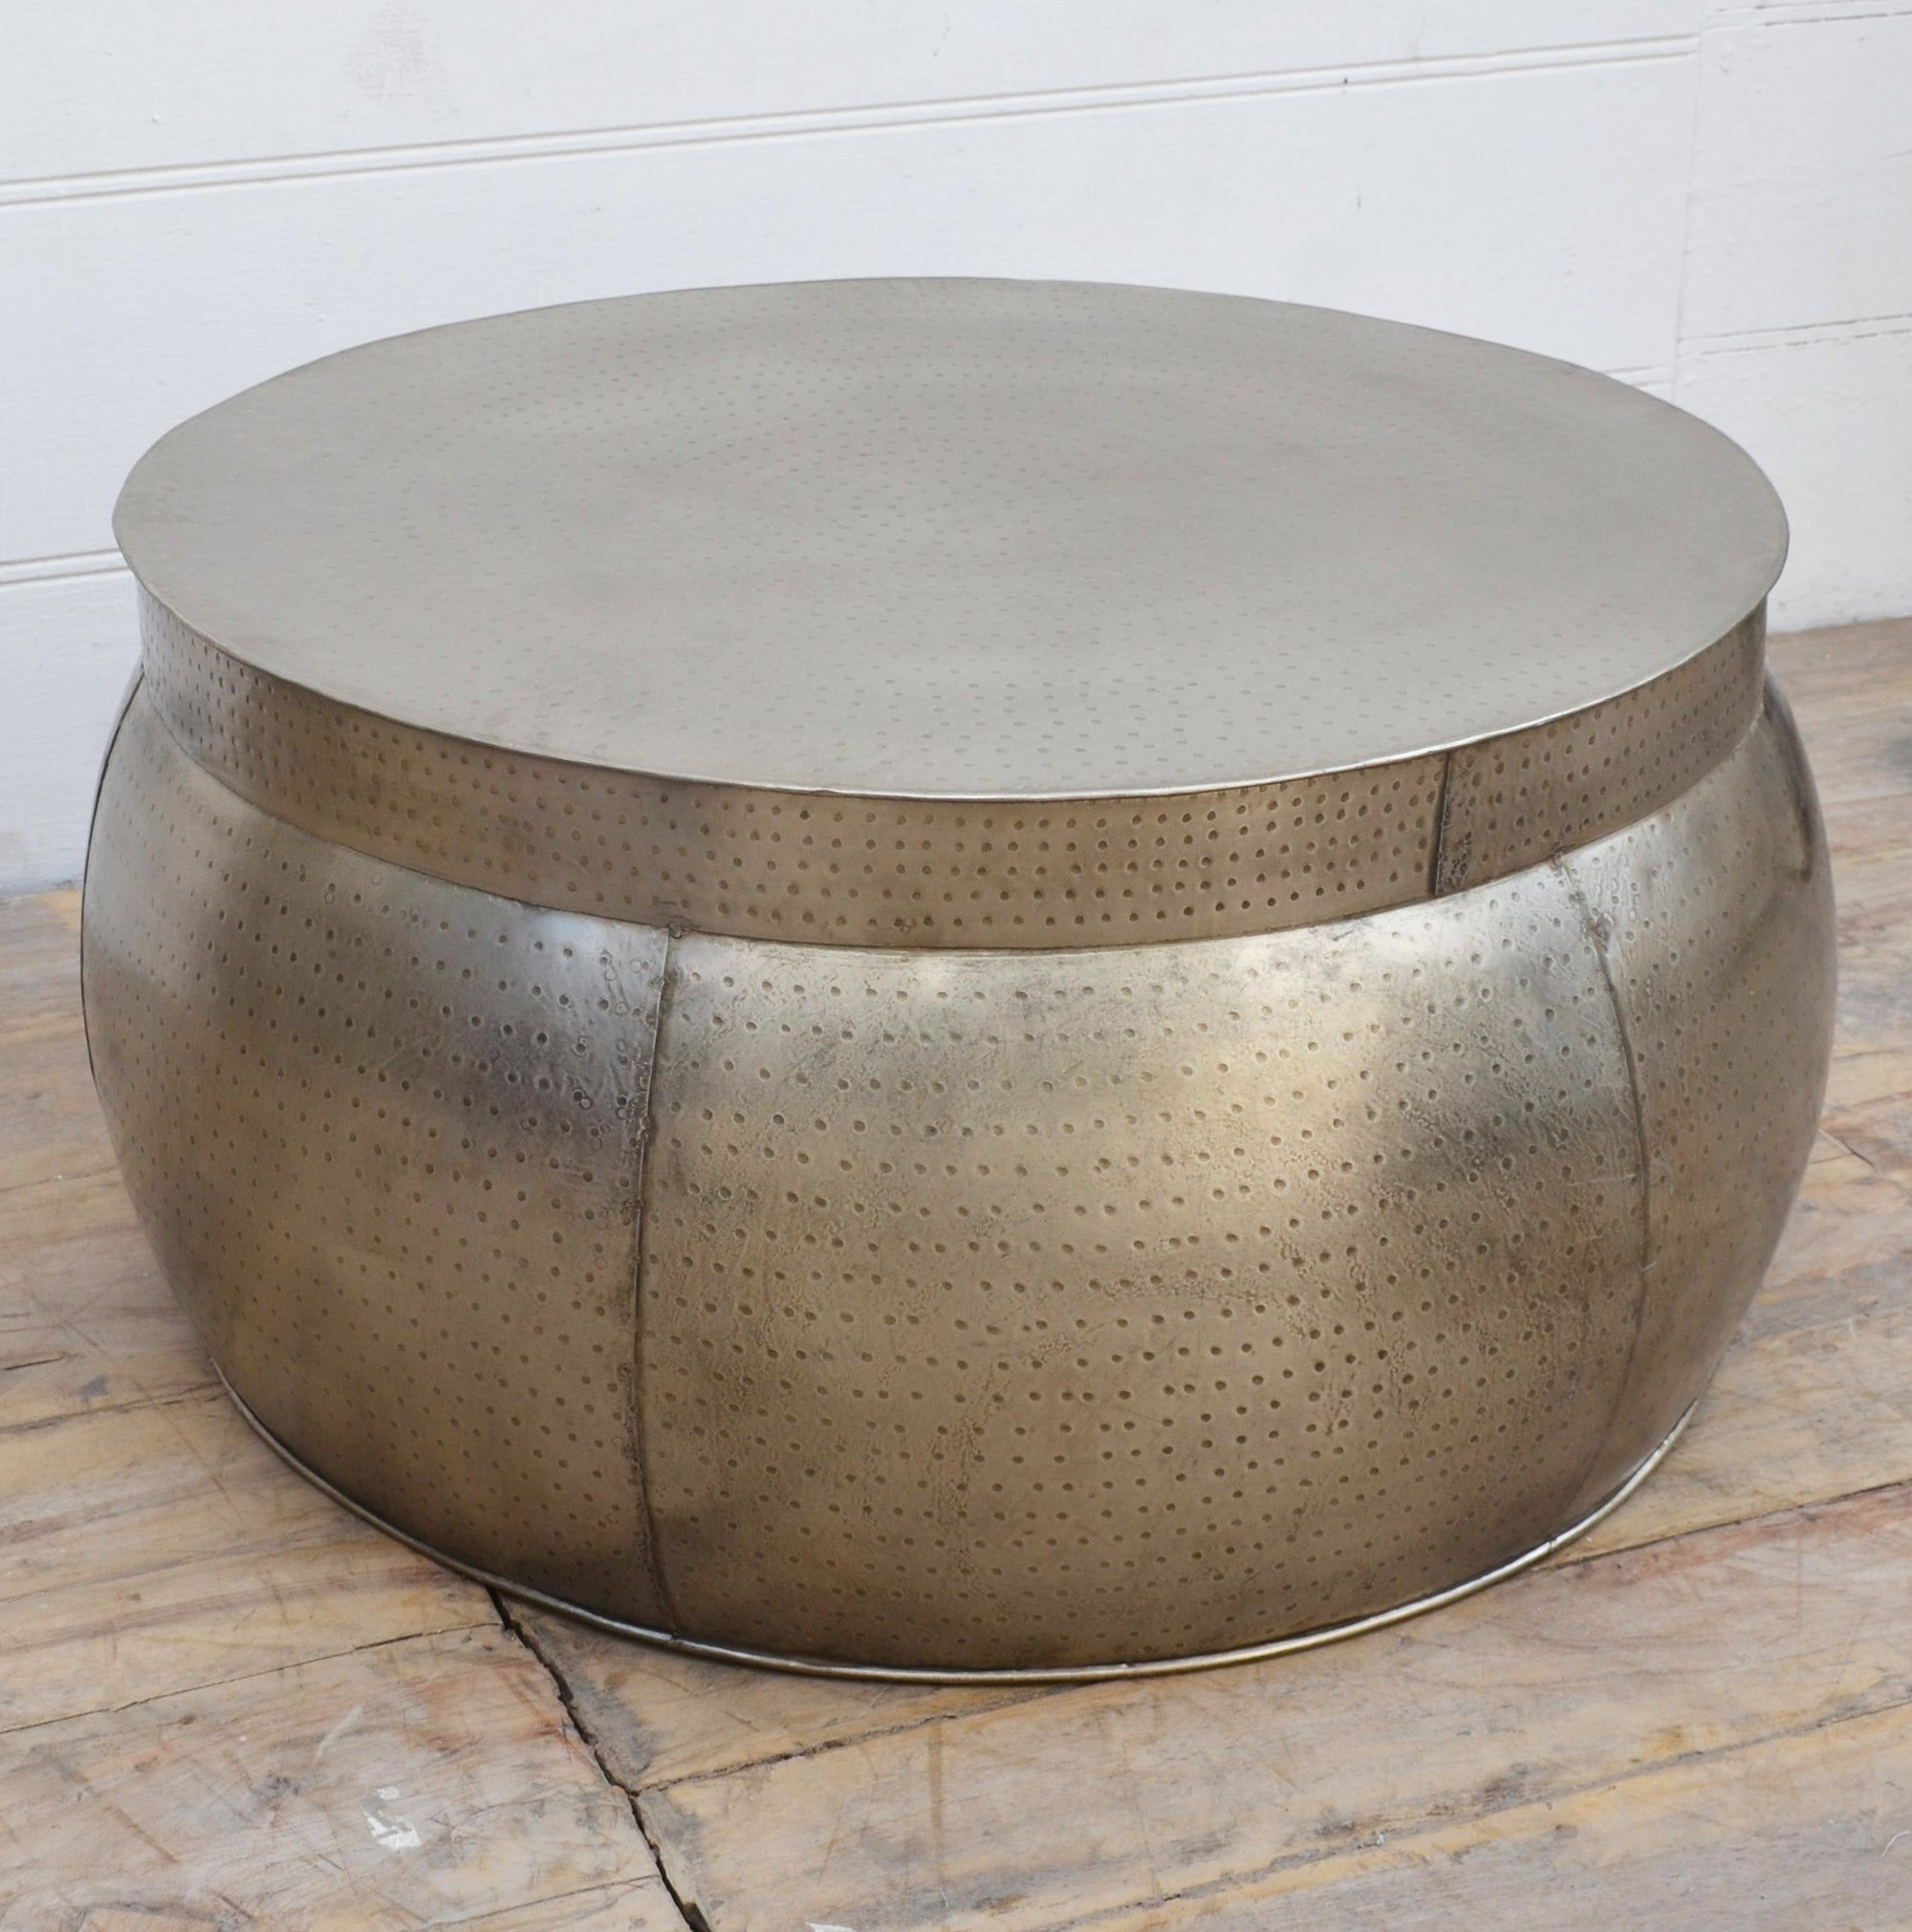 Hammered Metallic Coffee Table - decorstore